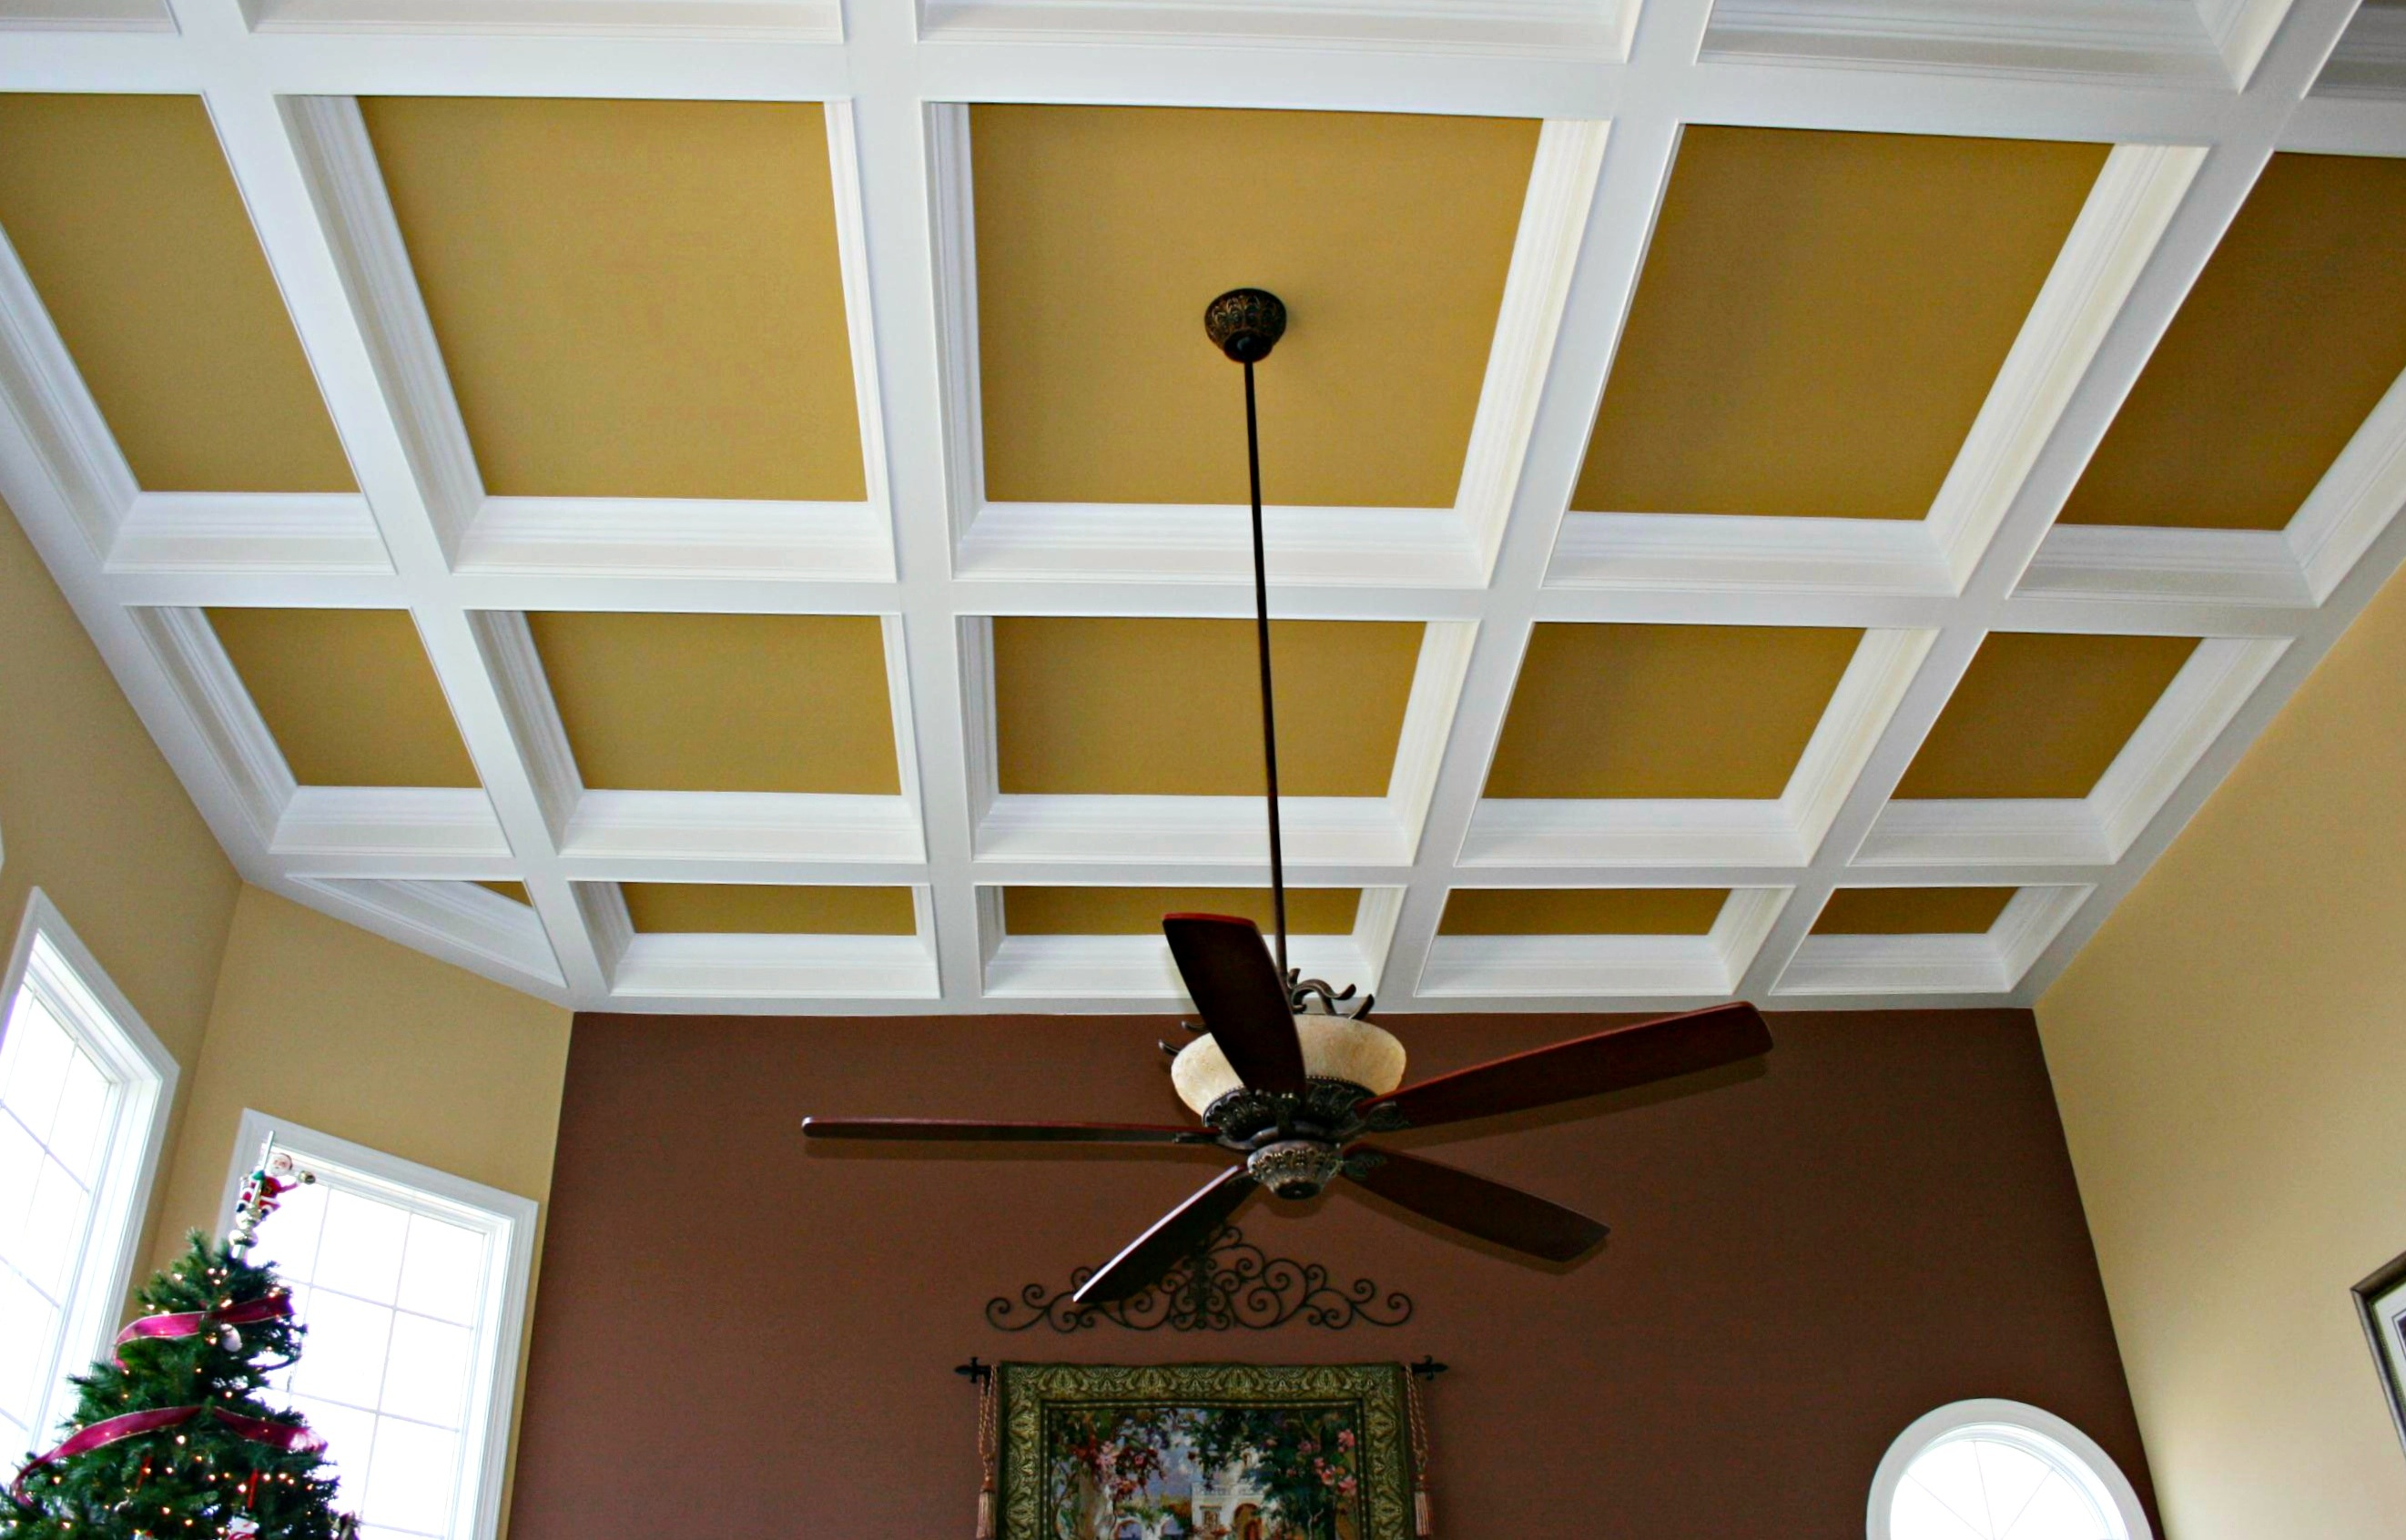 decorative ceilings 11 - Engaging Decorative Ceiling Tiles